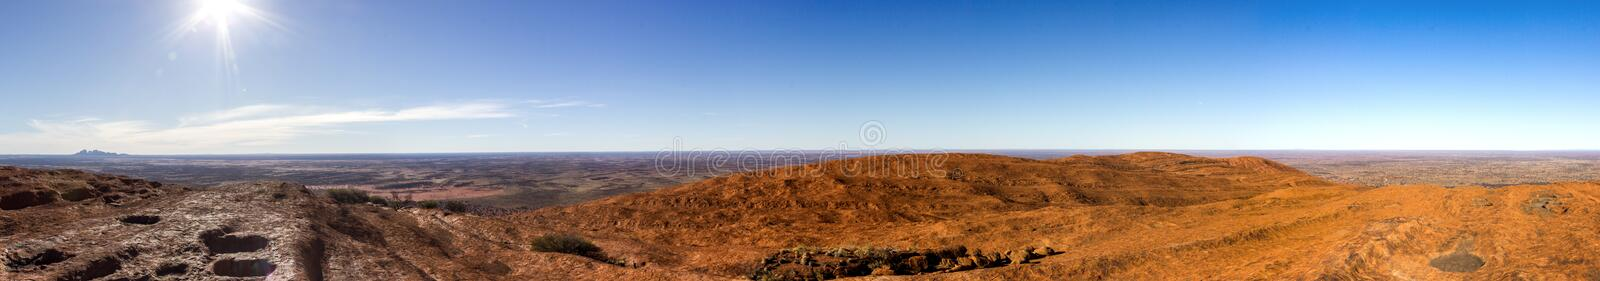 panorama view from the uluru after hiking up the Uluru with kata tjuta in the distance, ayers Rock, the Red Center of Australia, stock photography